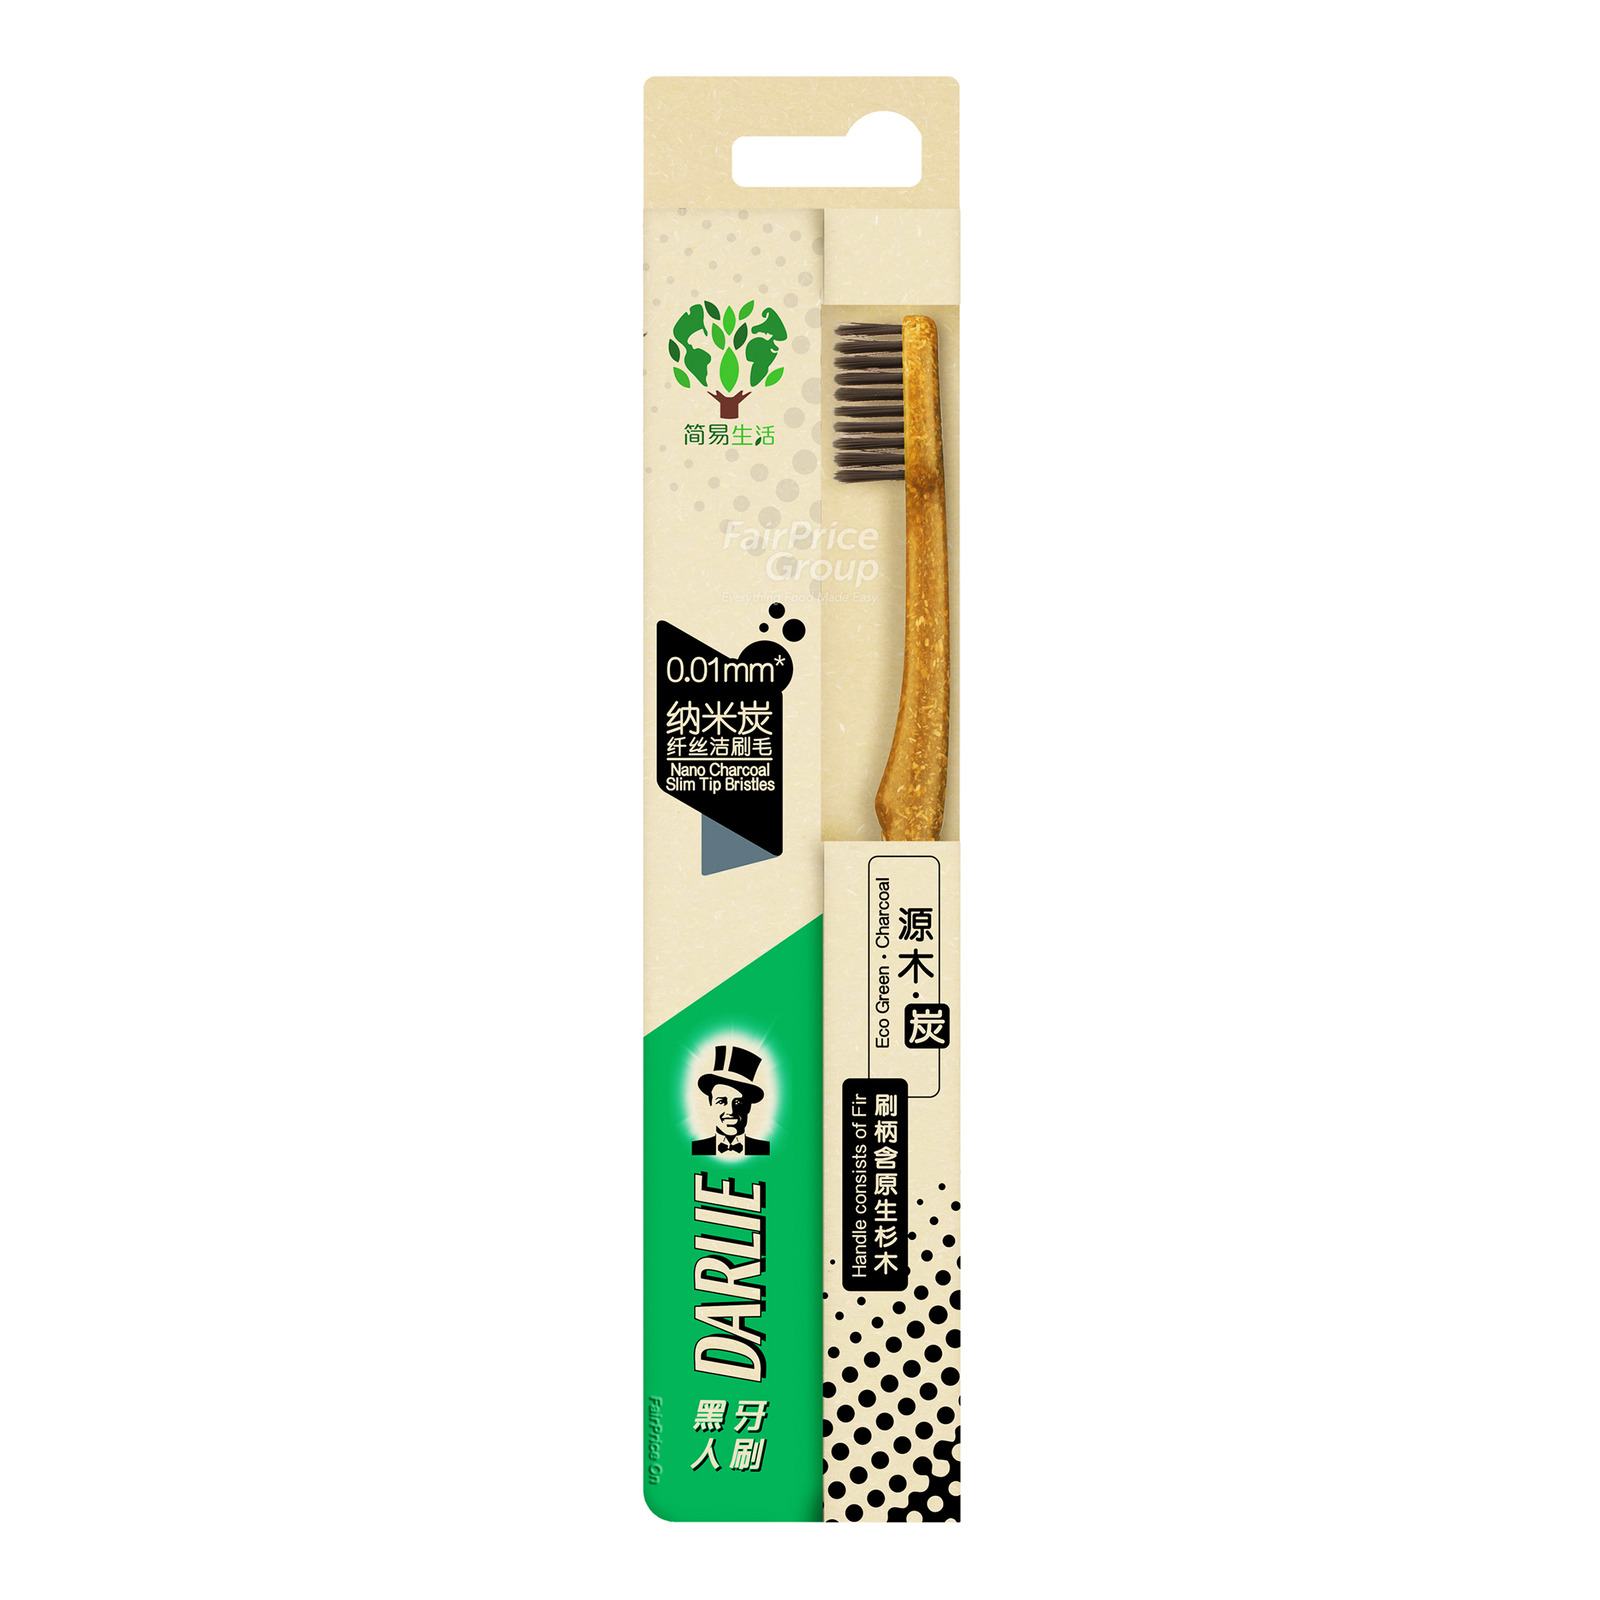 Darlie Eco Green Toothbrush - Charcoal